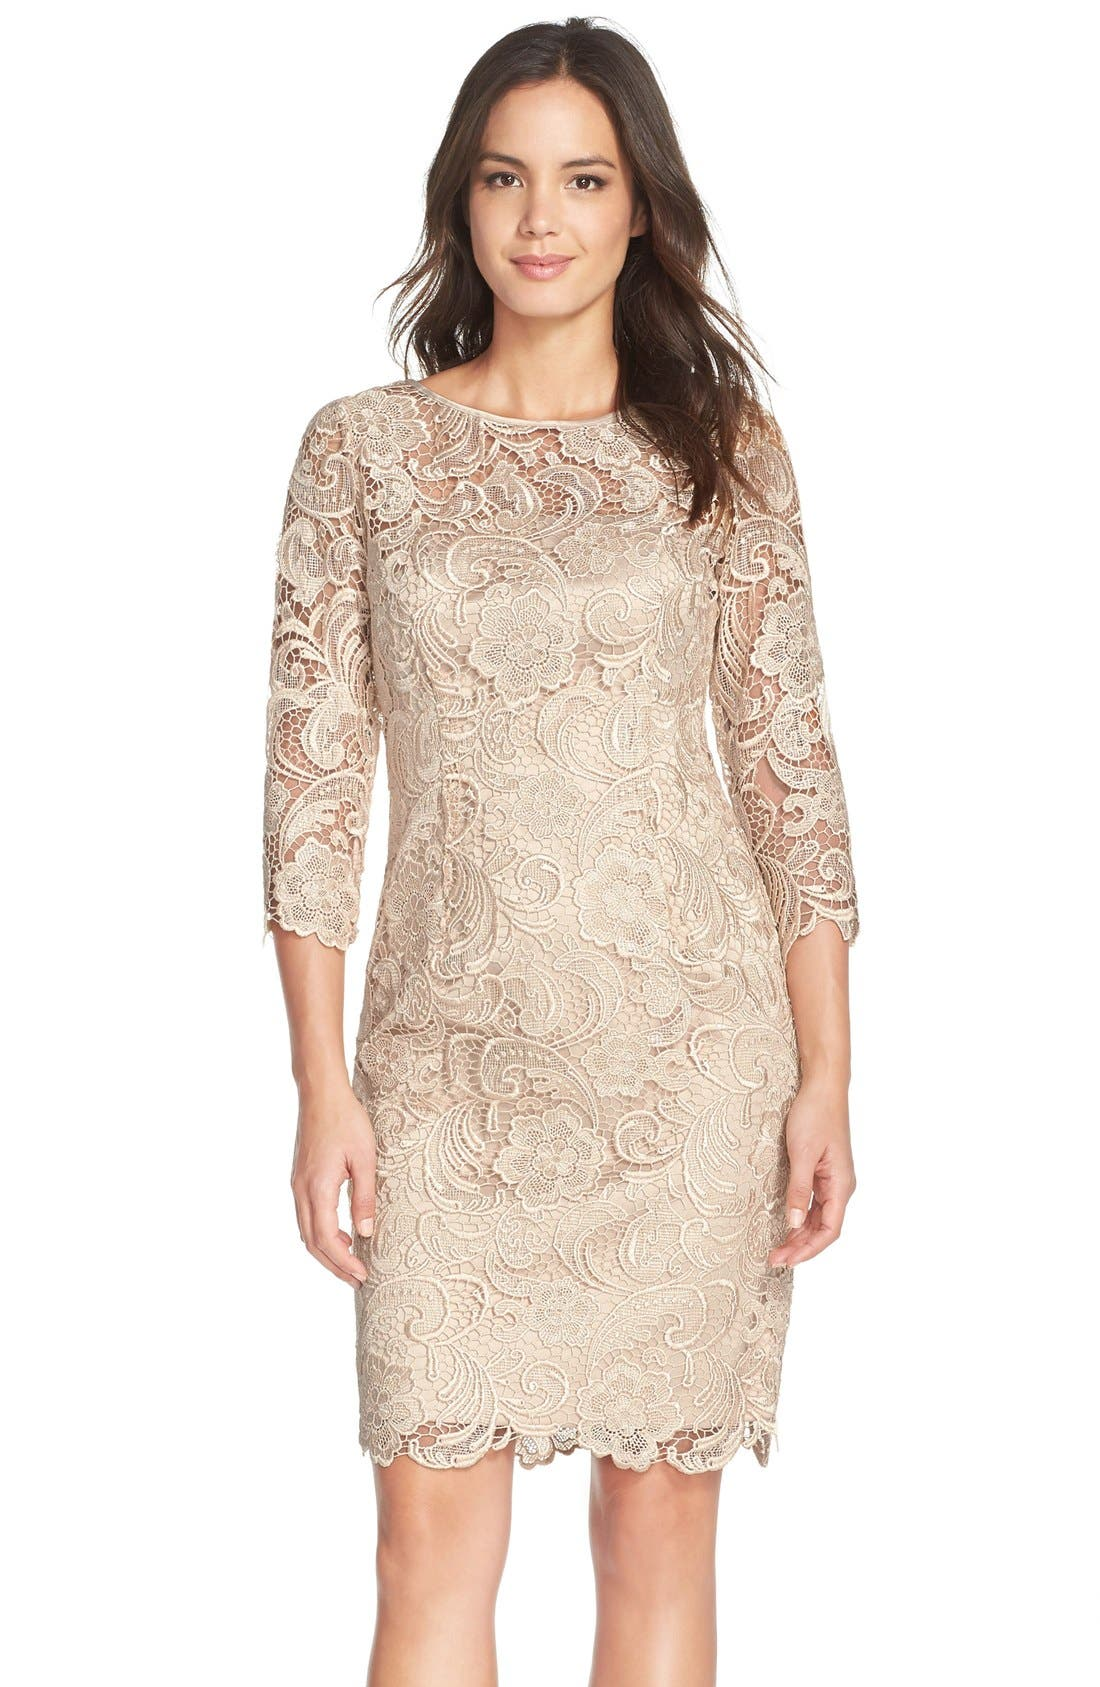 ADRIANNA PAPELL,                             Illusion Yoke Guipure Lace Sheath Dress,                             Main thumbnail 1, color,                             250